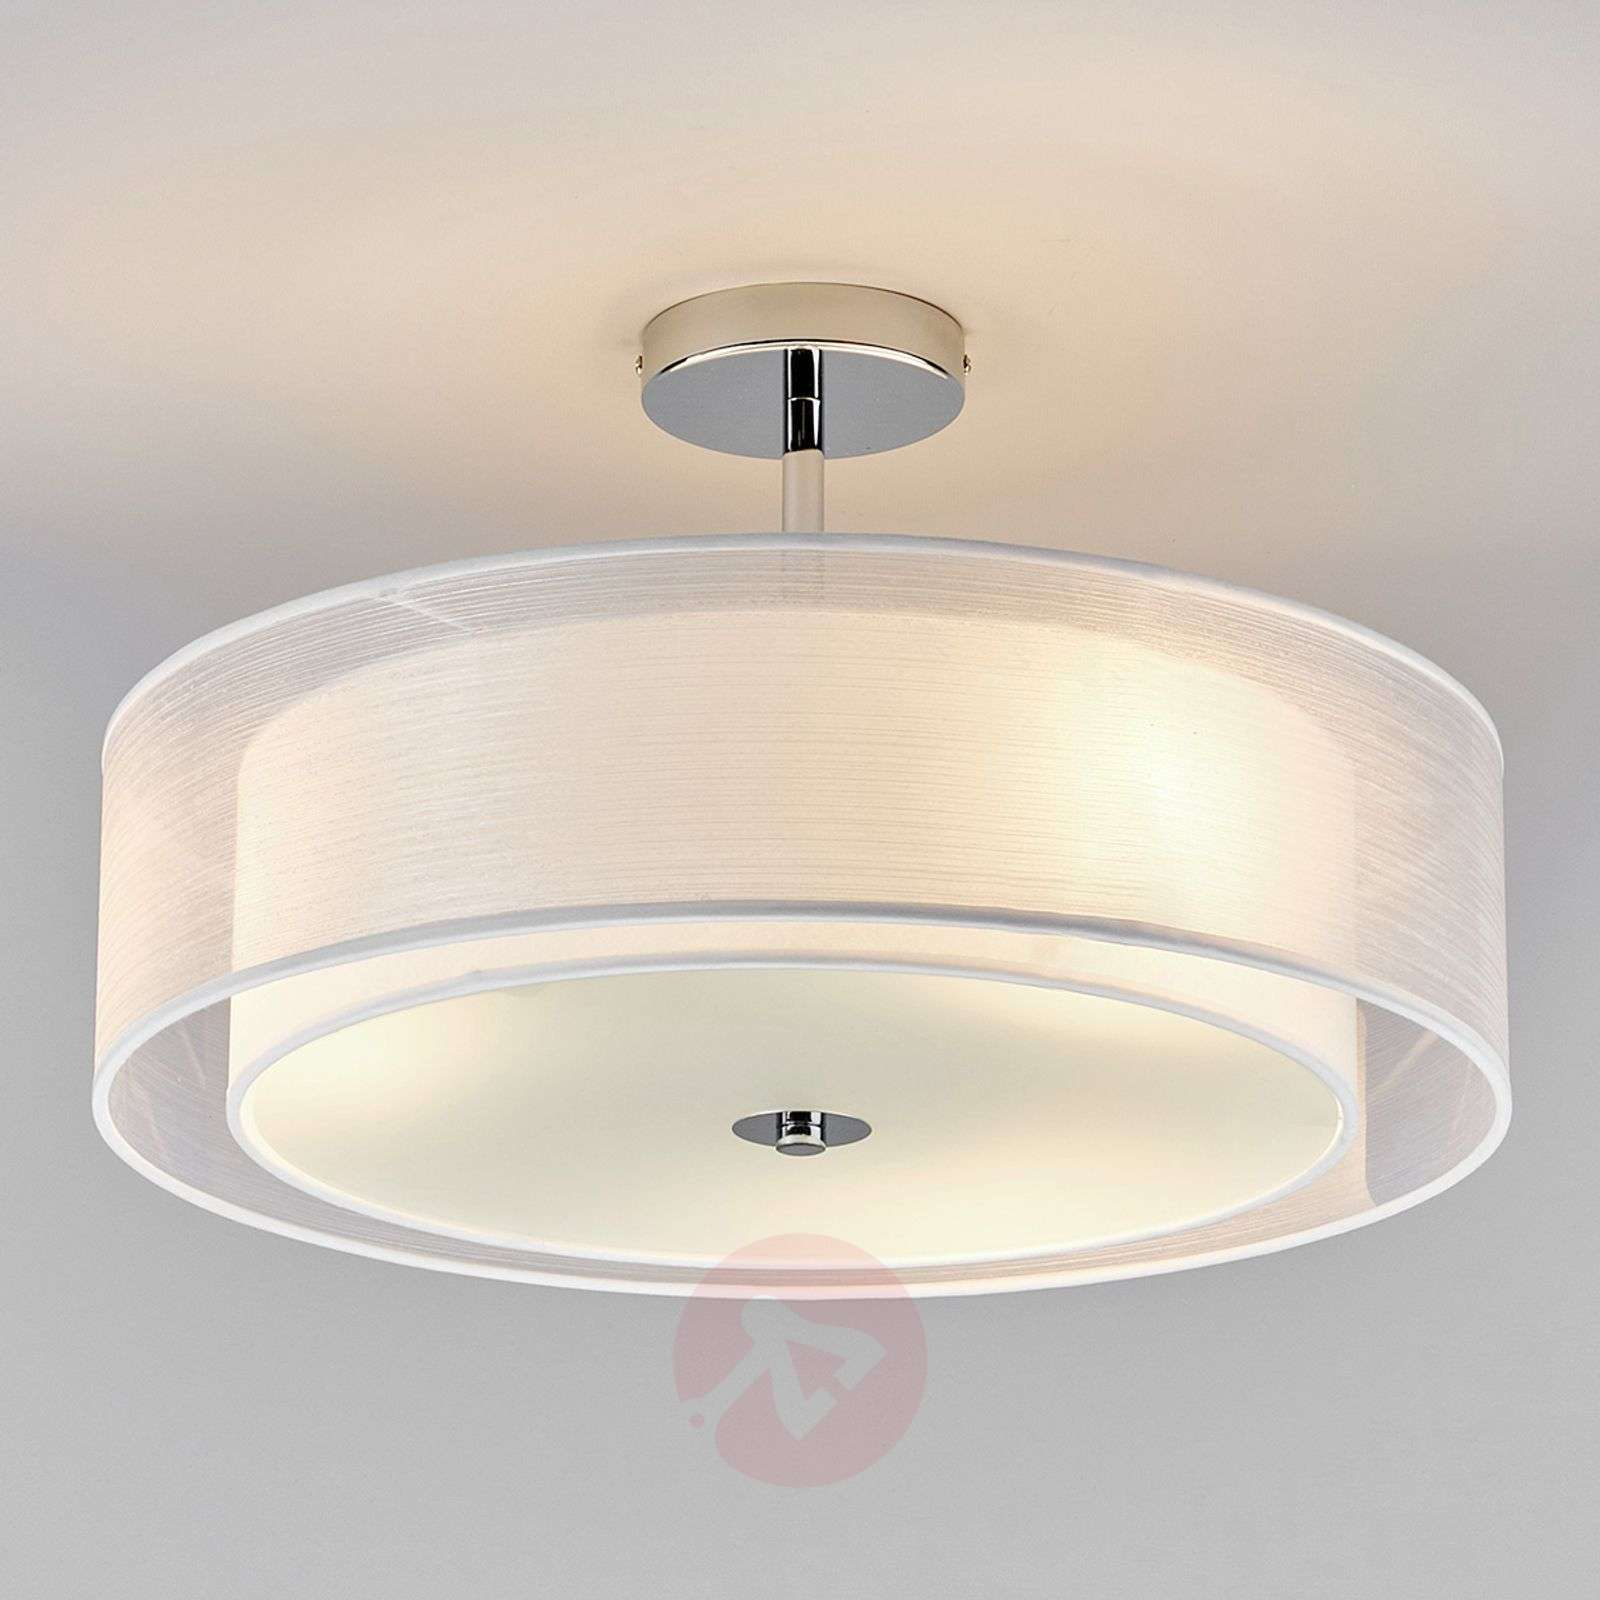 Pikka LED ceiling light with a white lampshade | Lights.co.uk